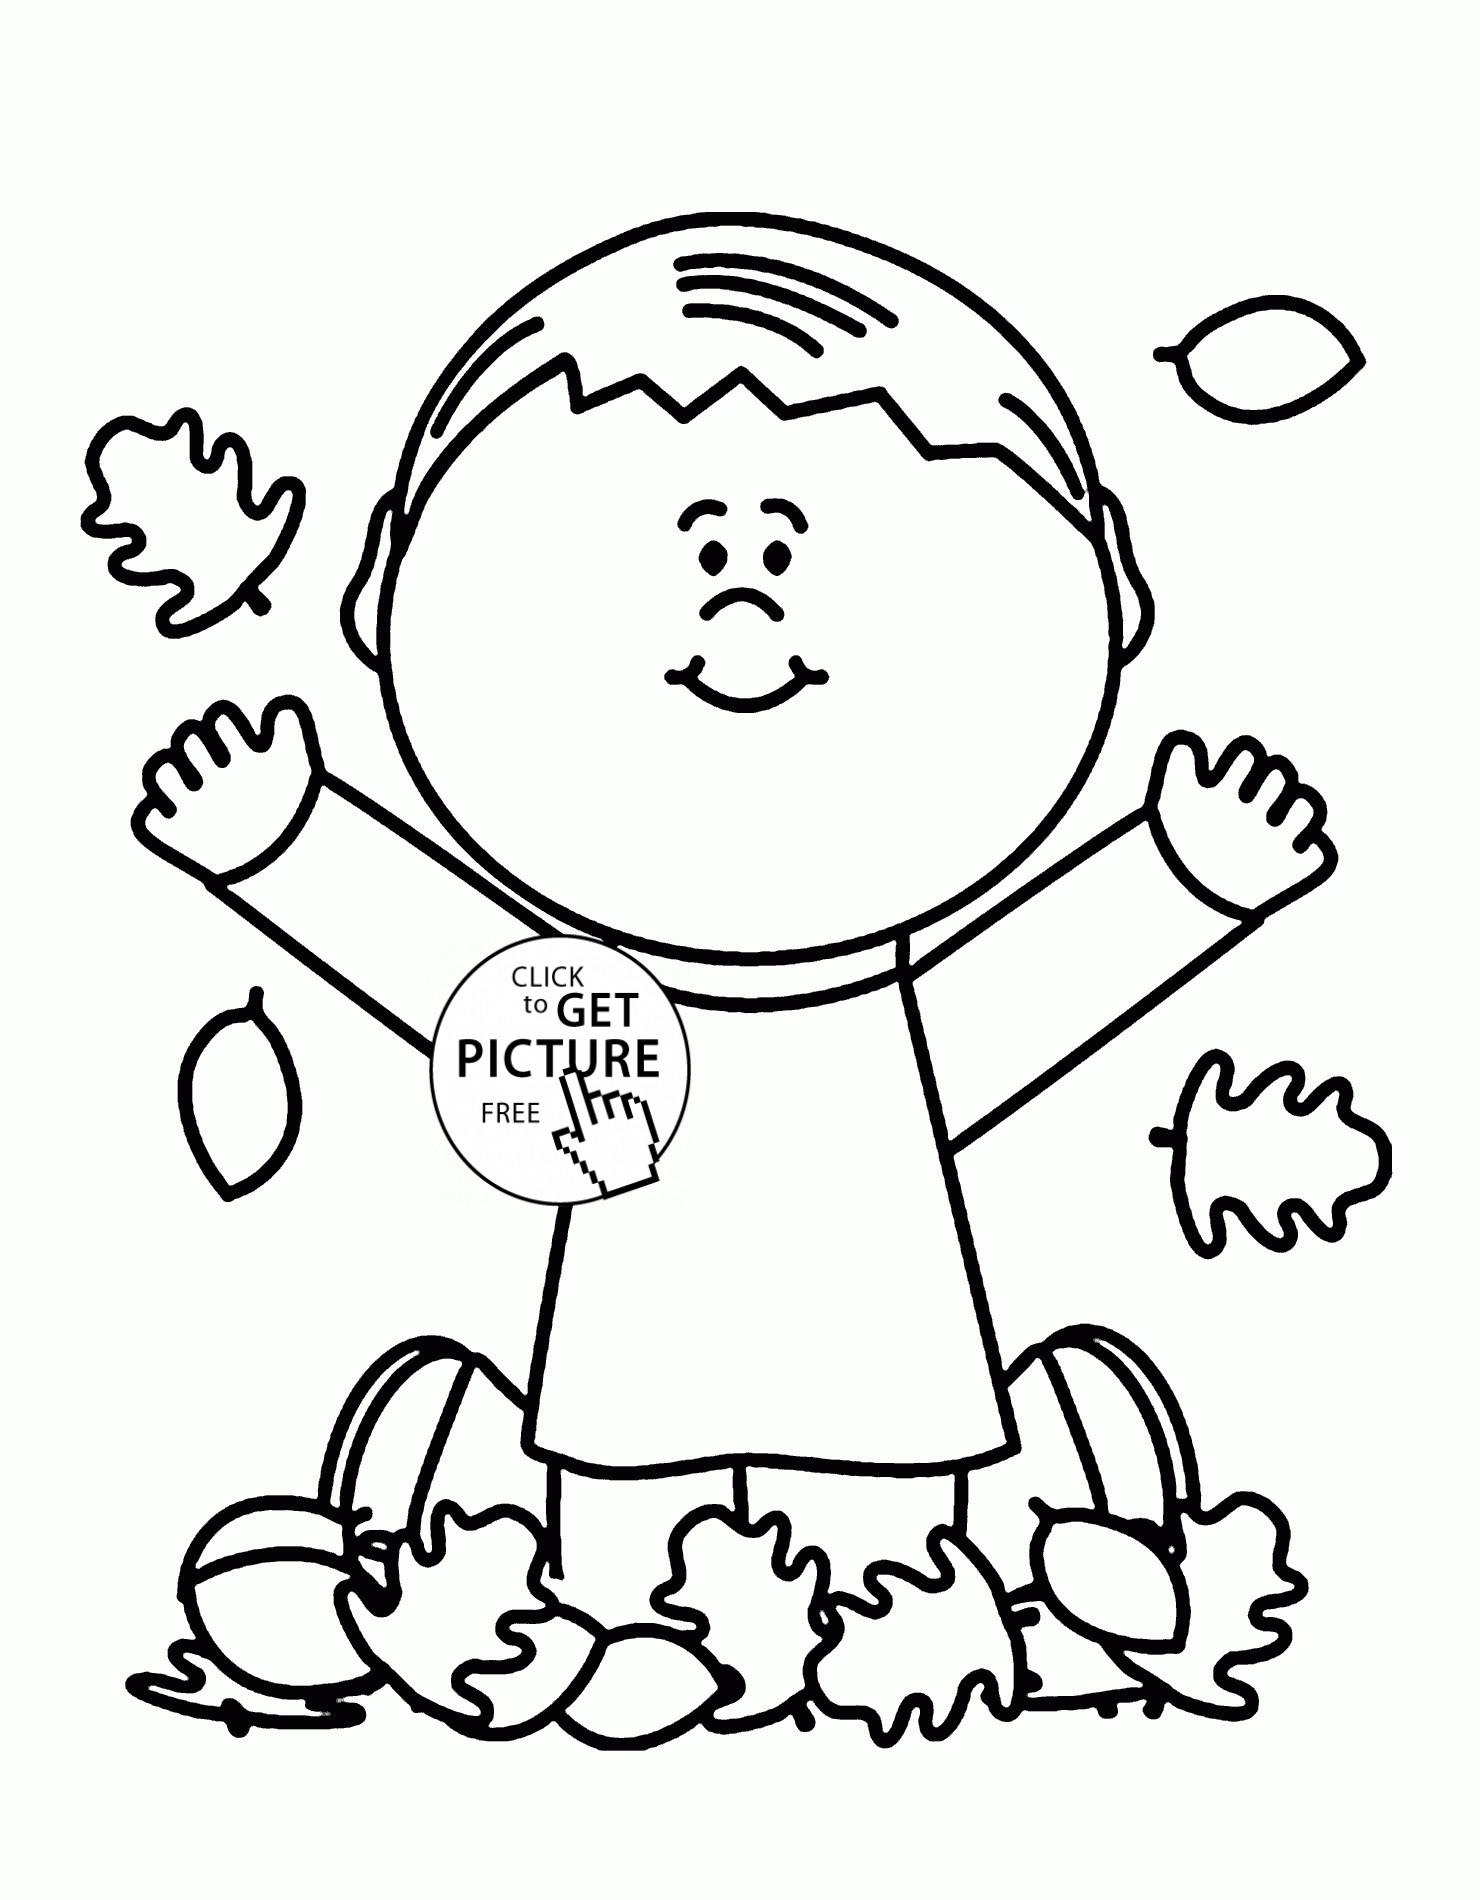 October Coloring Pages For Kids  October Coloring Pages Collection Free Coloring Books